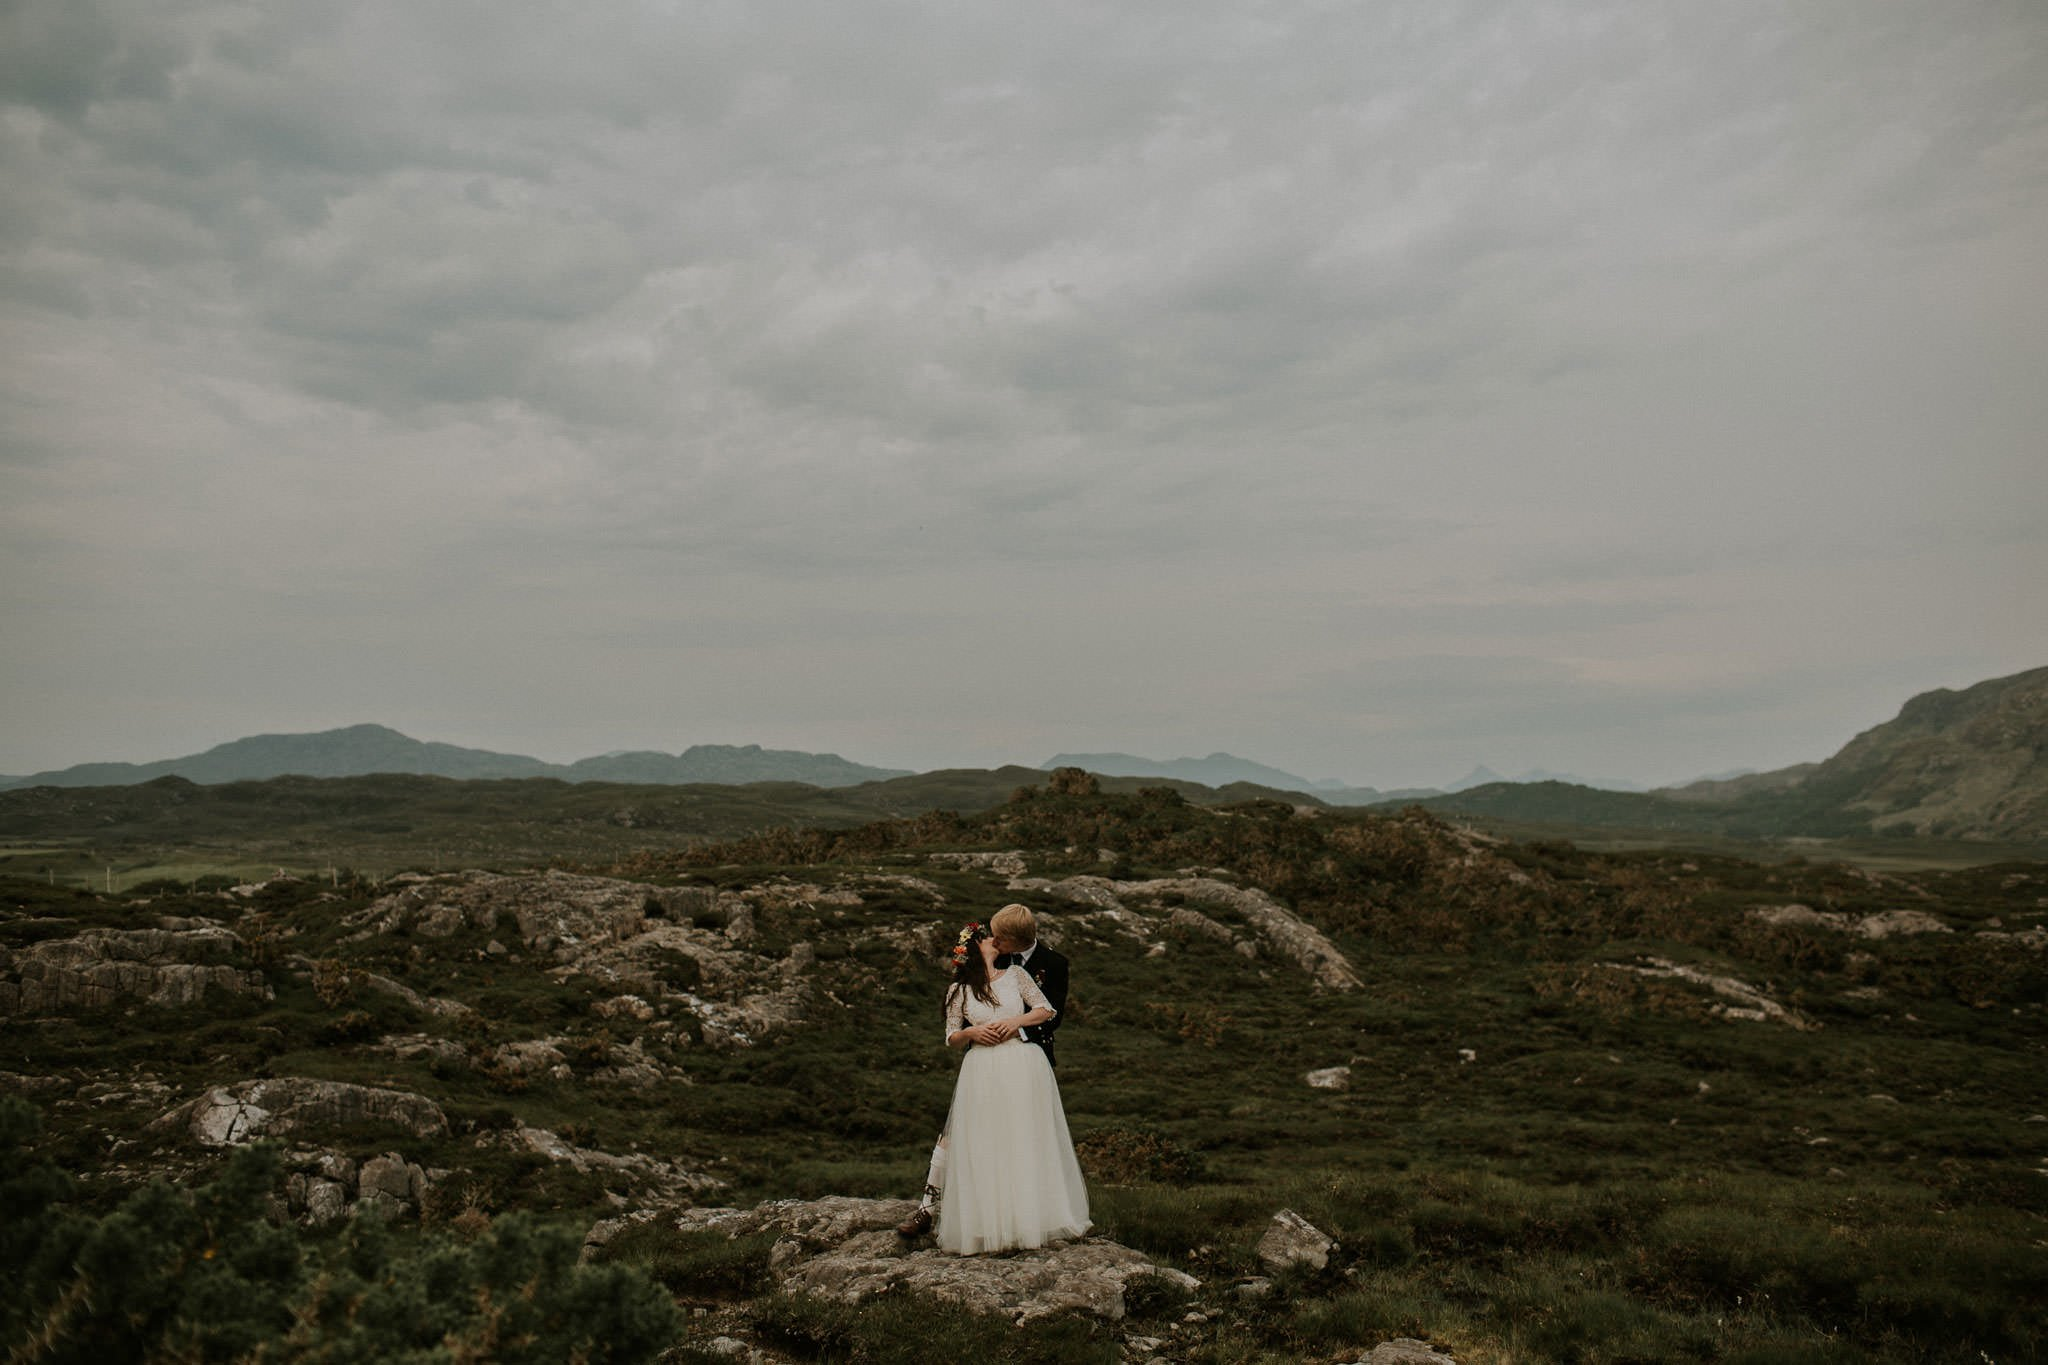 elopement-wedding-photography-tuscany 007